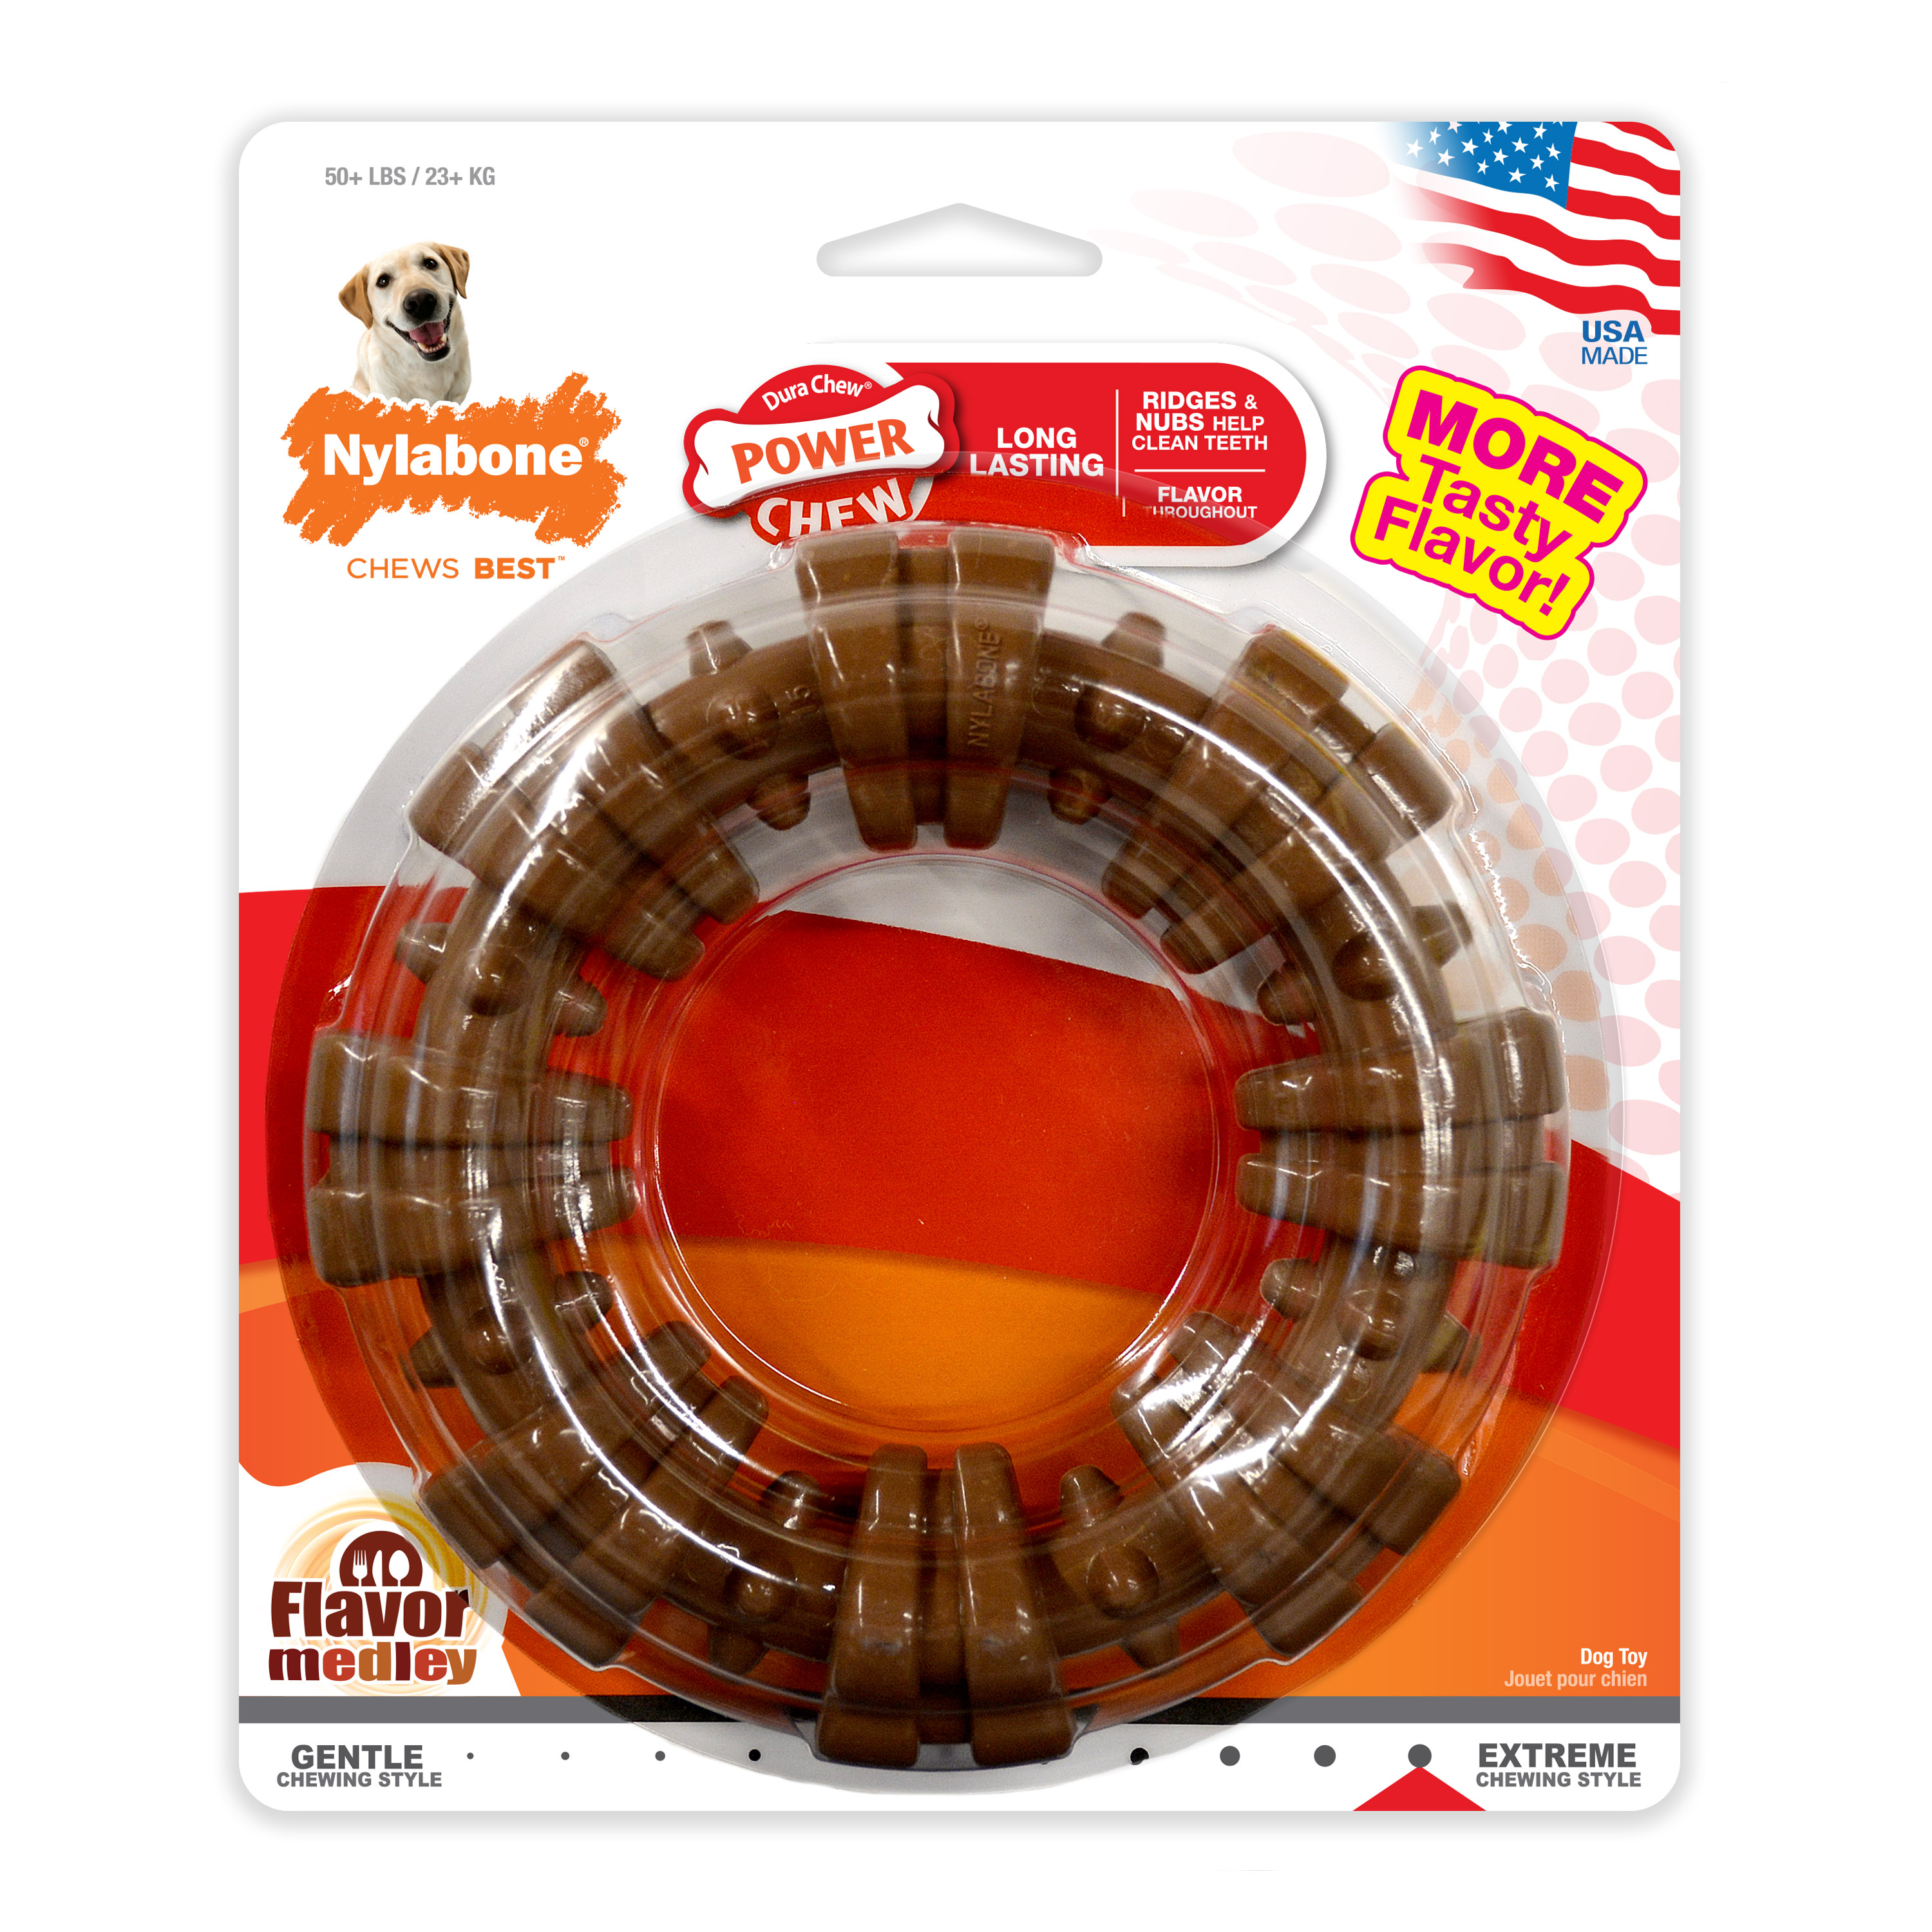 Nylabone Ring Power Chew Dura Chew Large Dog Toy Flavor Medley, Souper